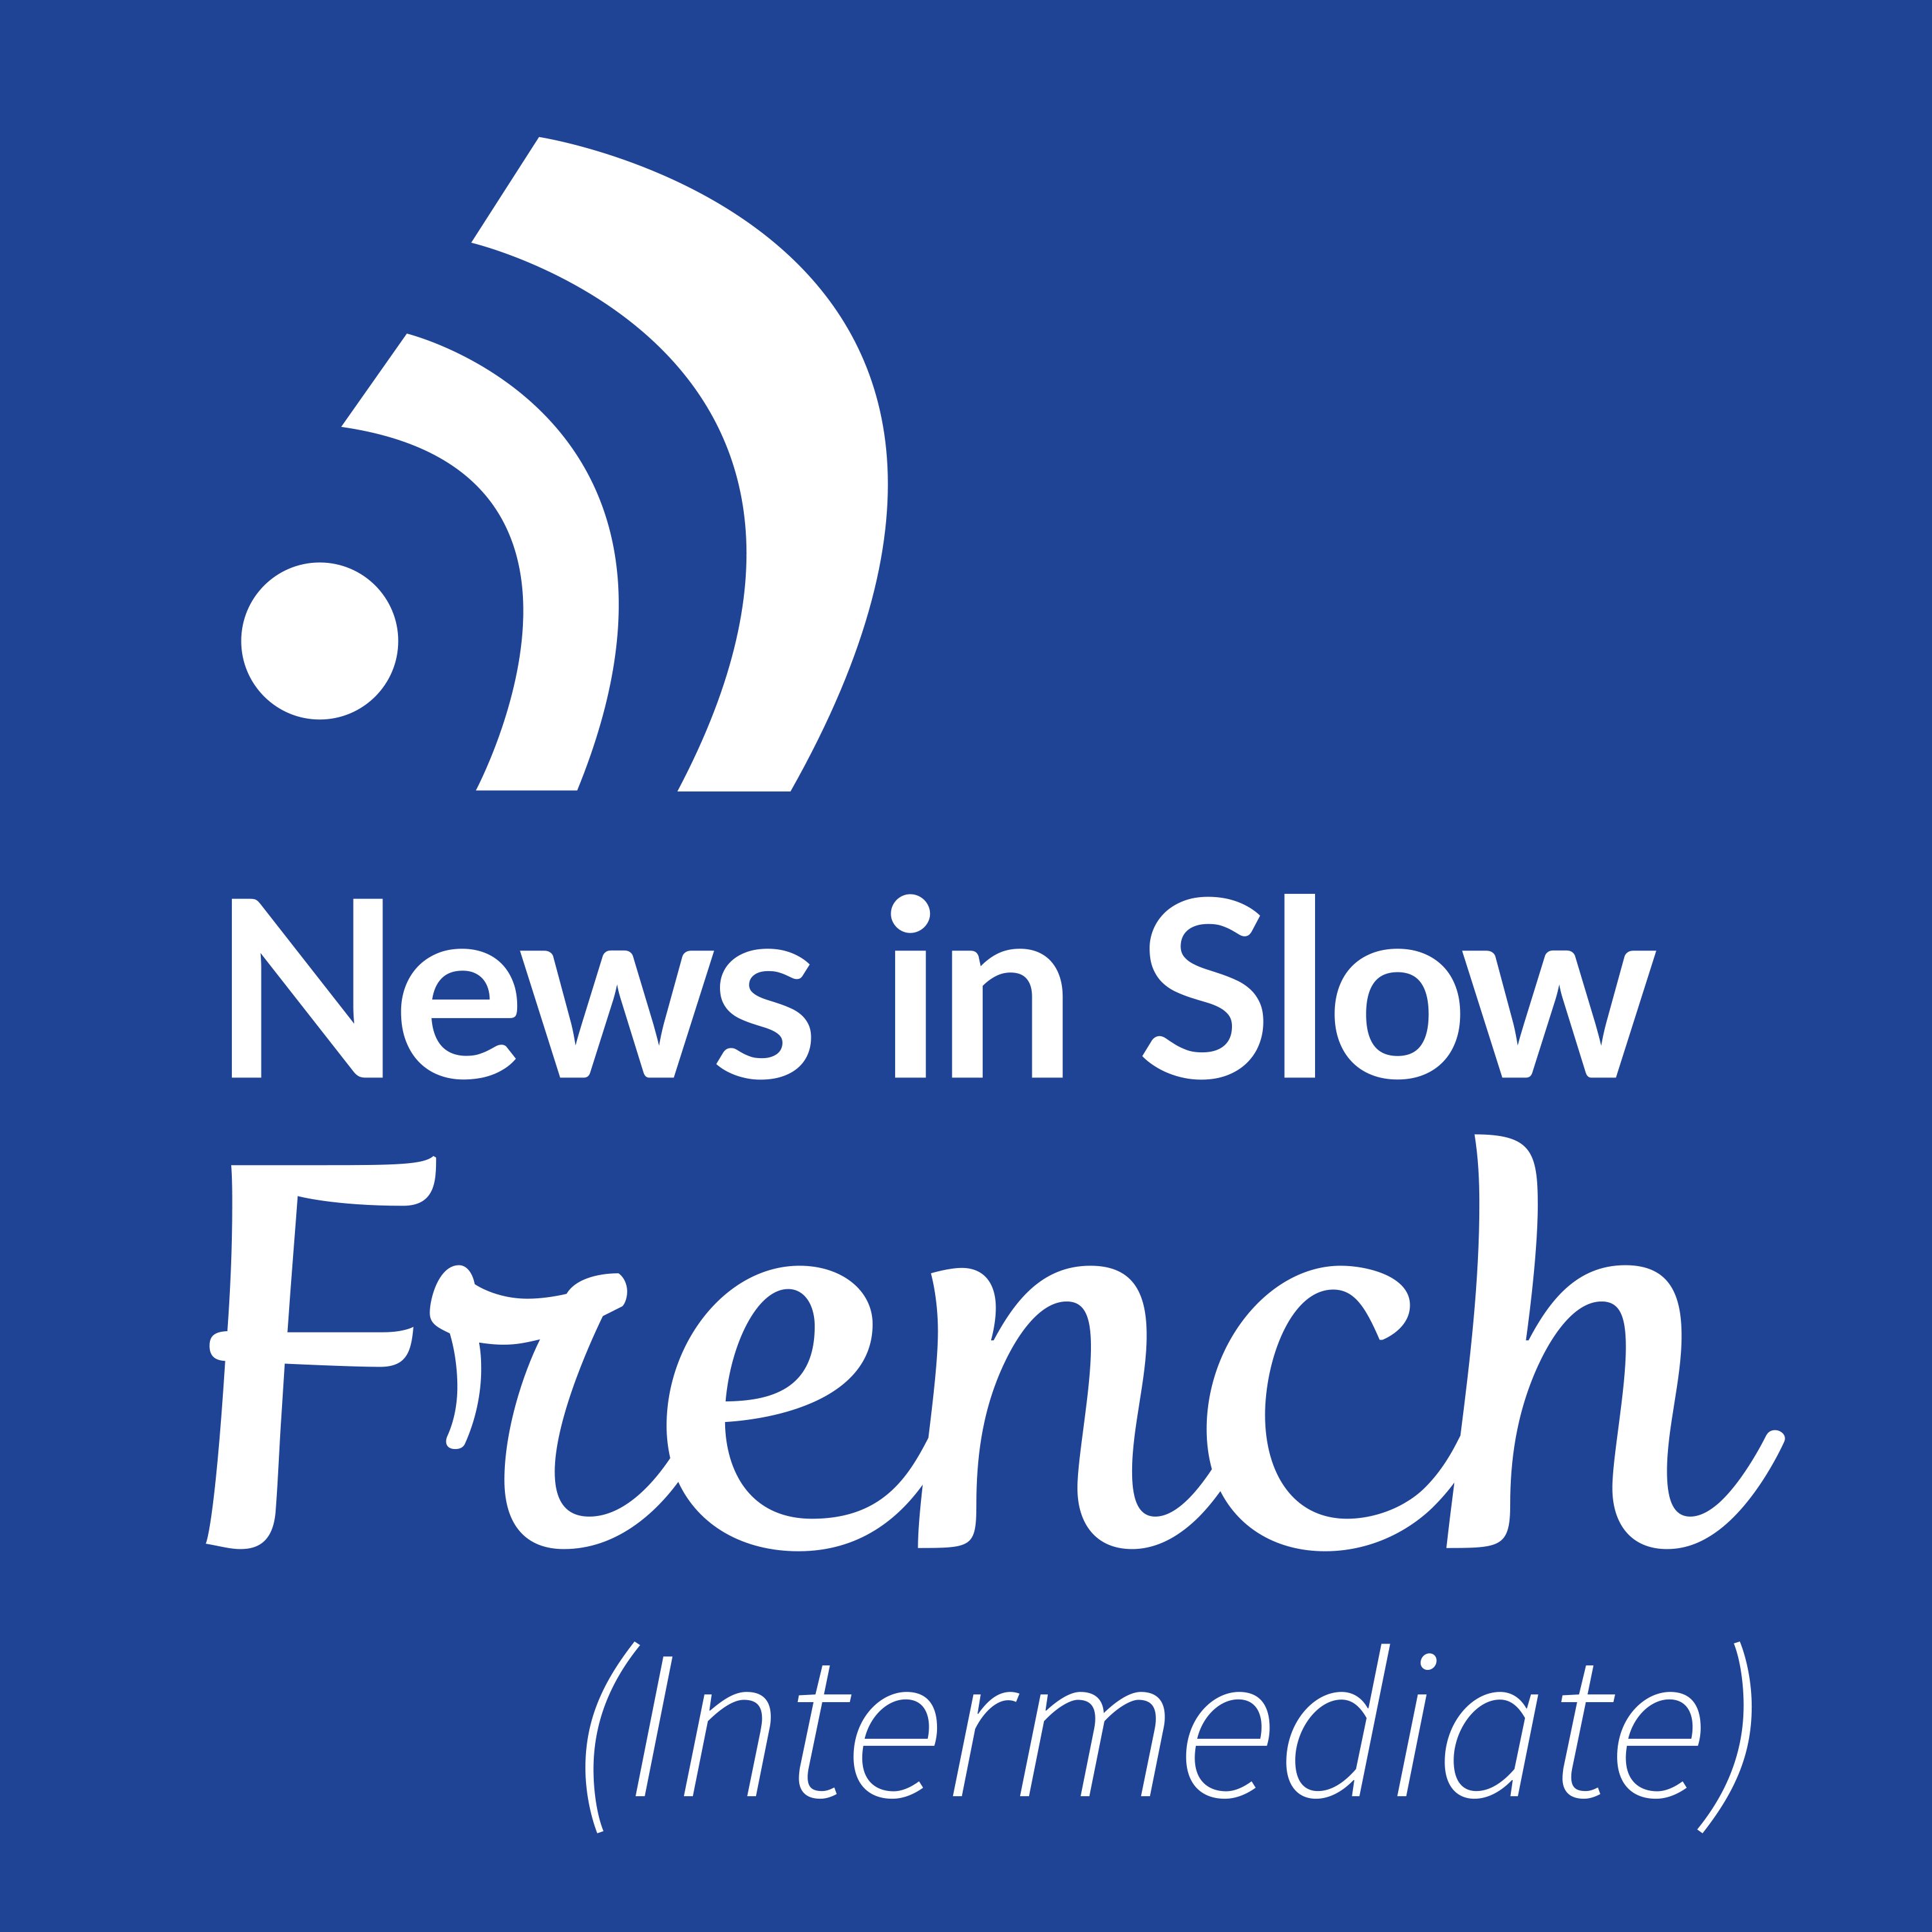 News in Slow French #258 - Learn French through current events